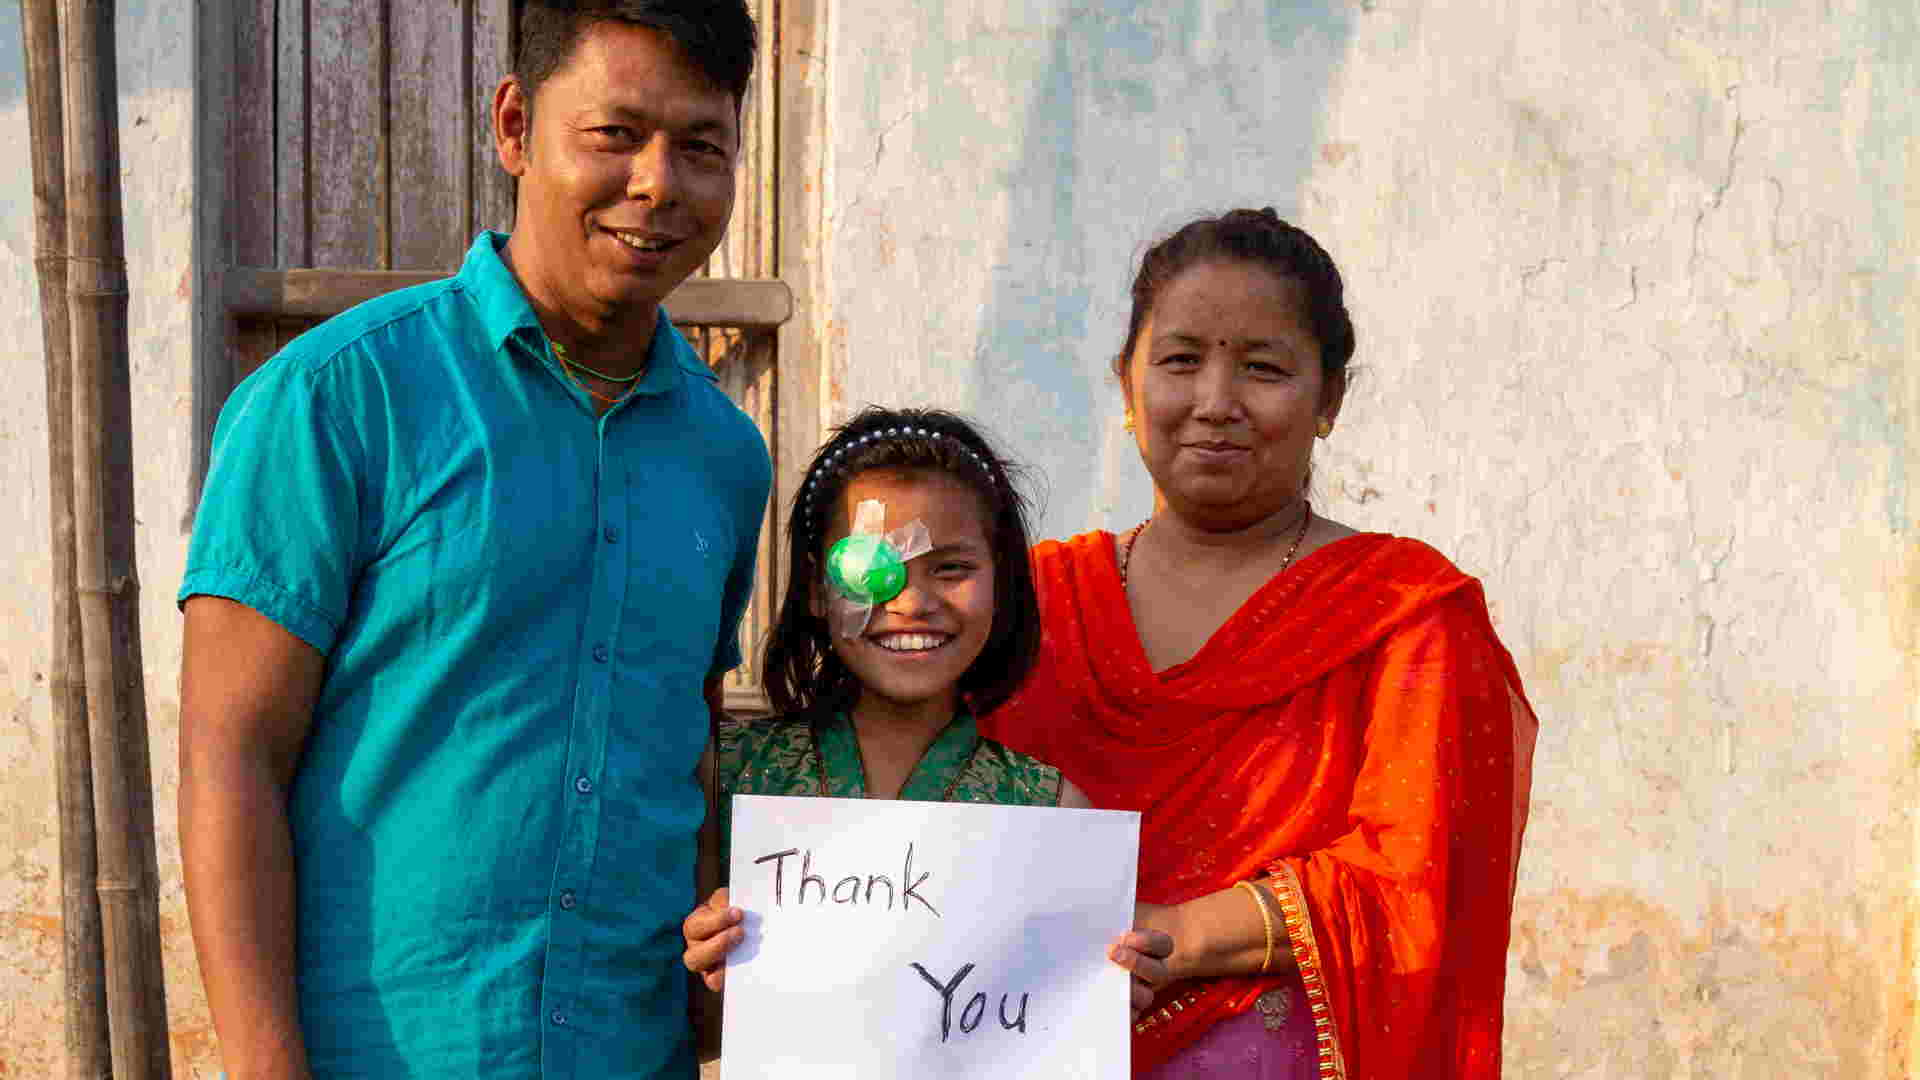 Christian Media Heads to Nepal to Make Miracles Happen